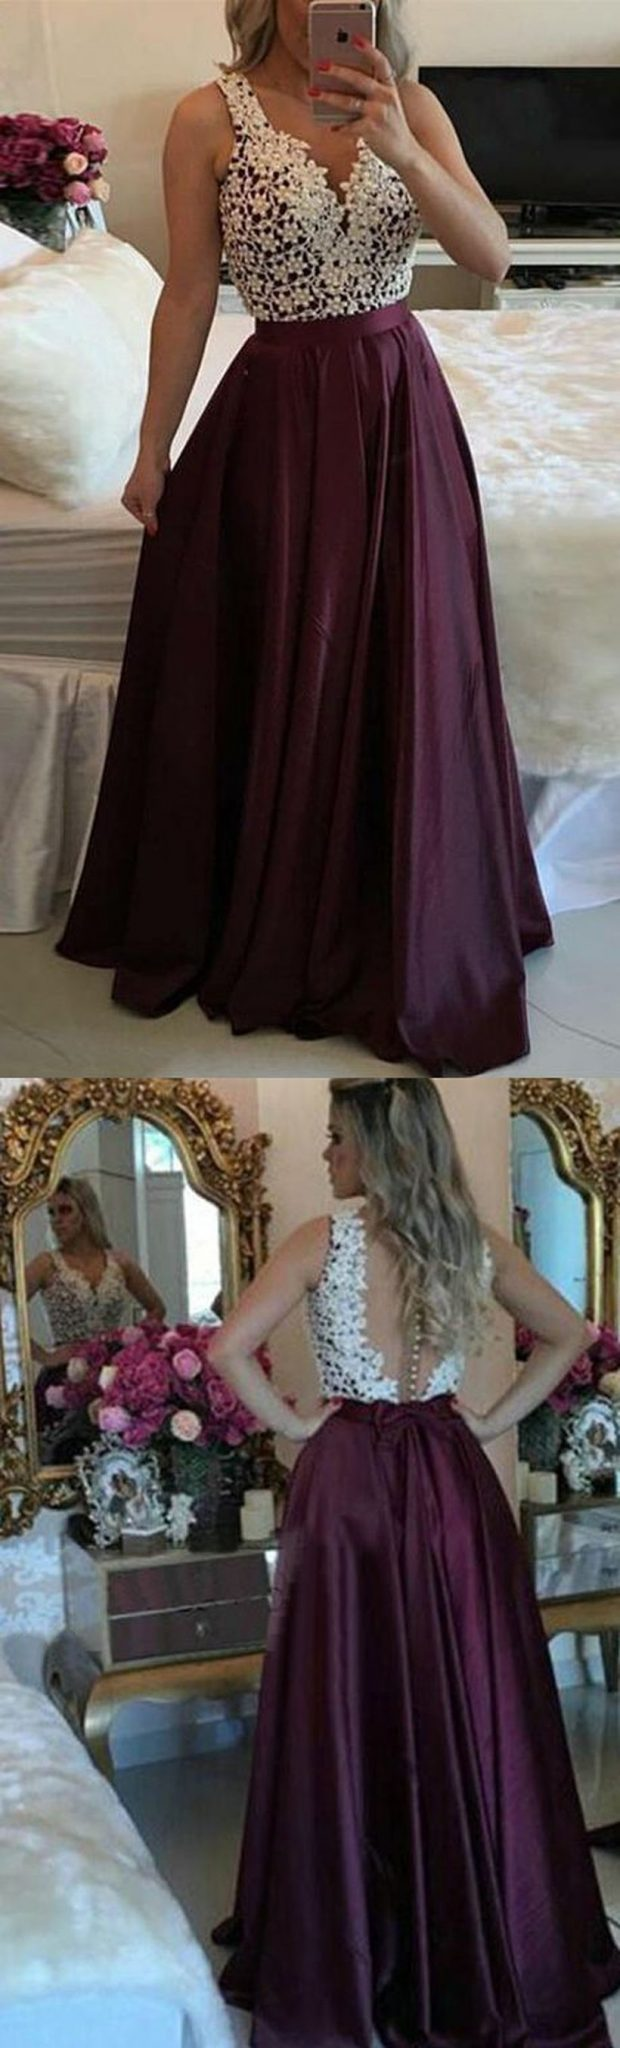 Gorgeous prom dresses for teens ideas 2017 33